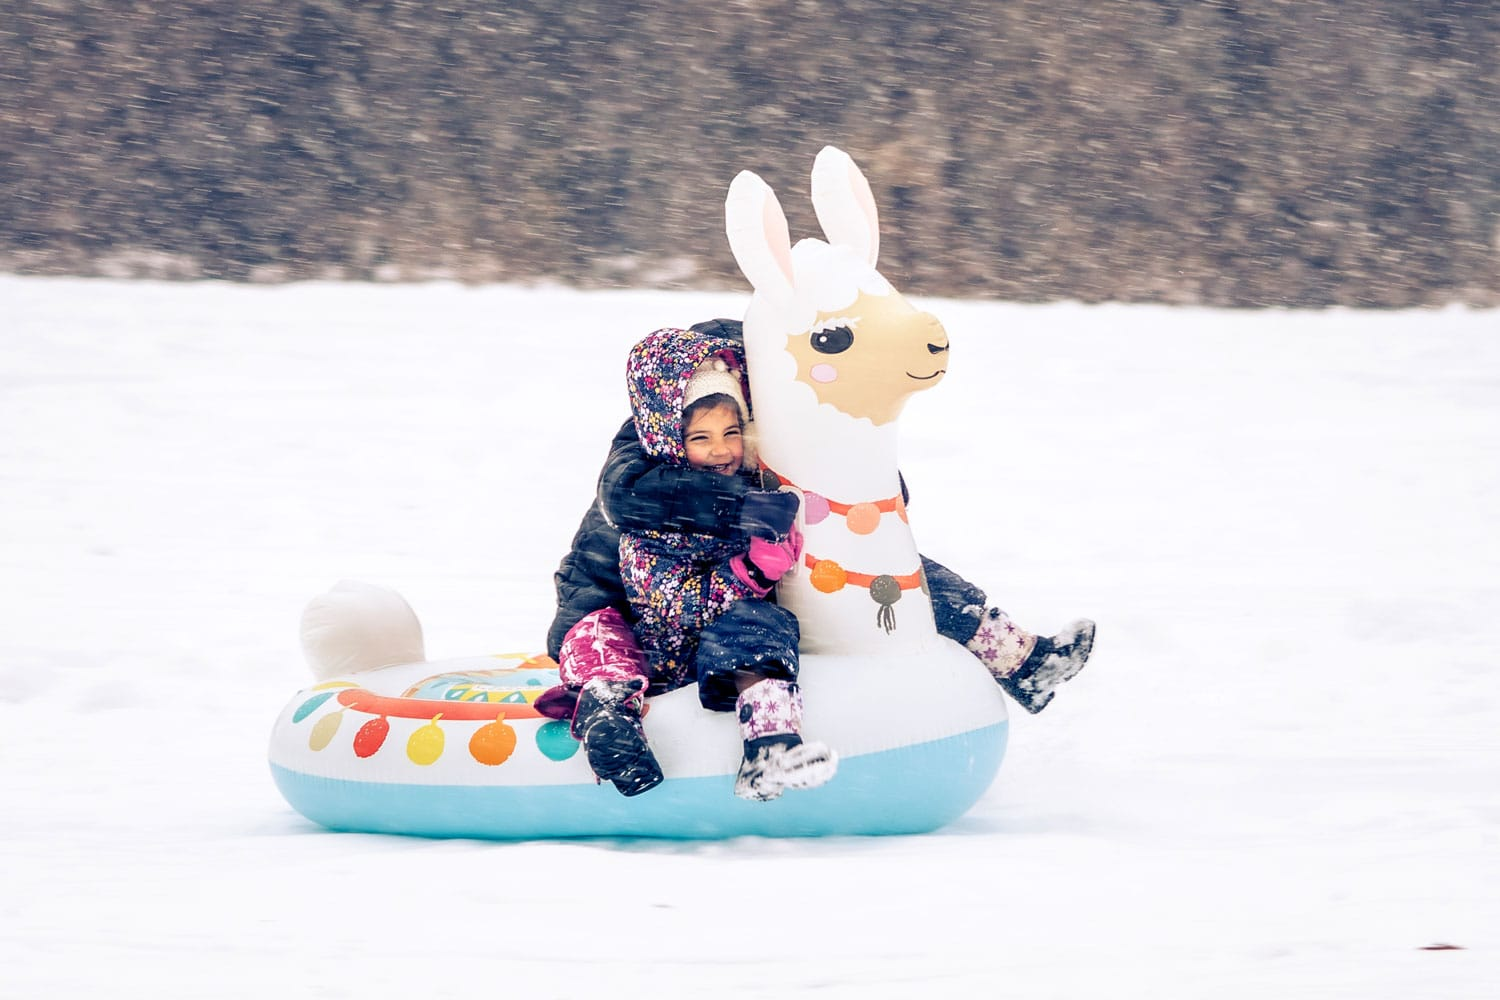 Little girl outside on a snowy day on her llama snow tube having fun.